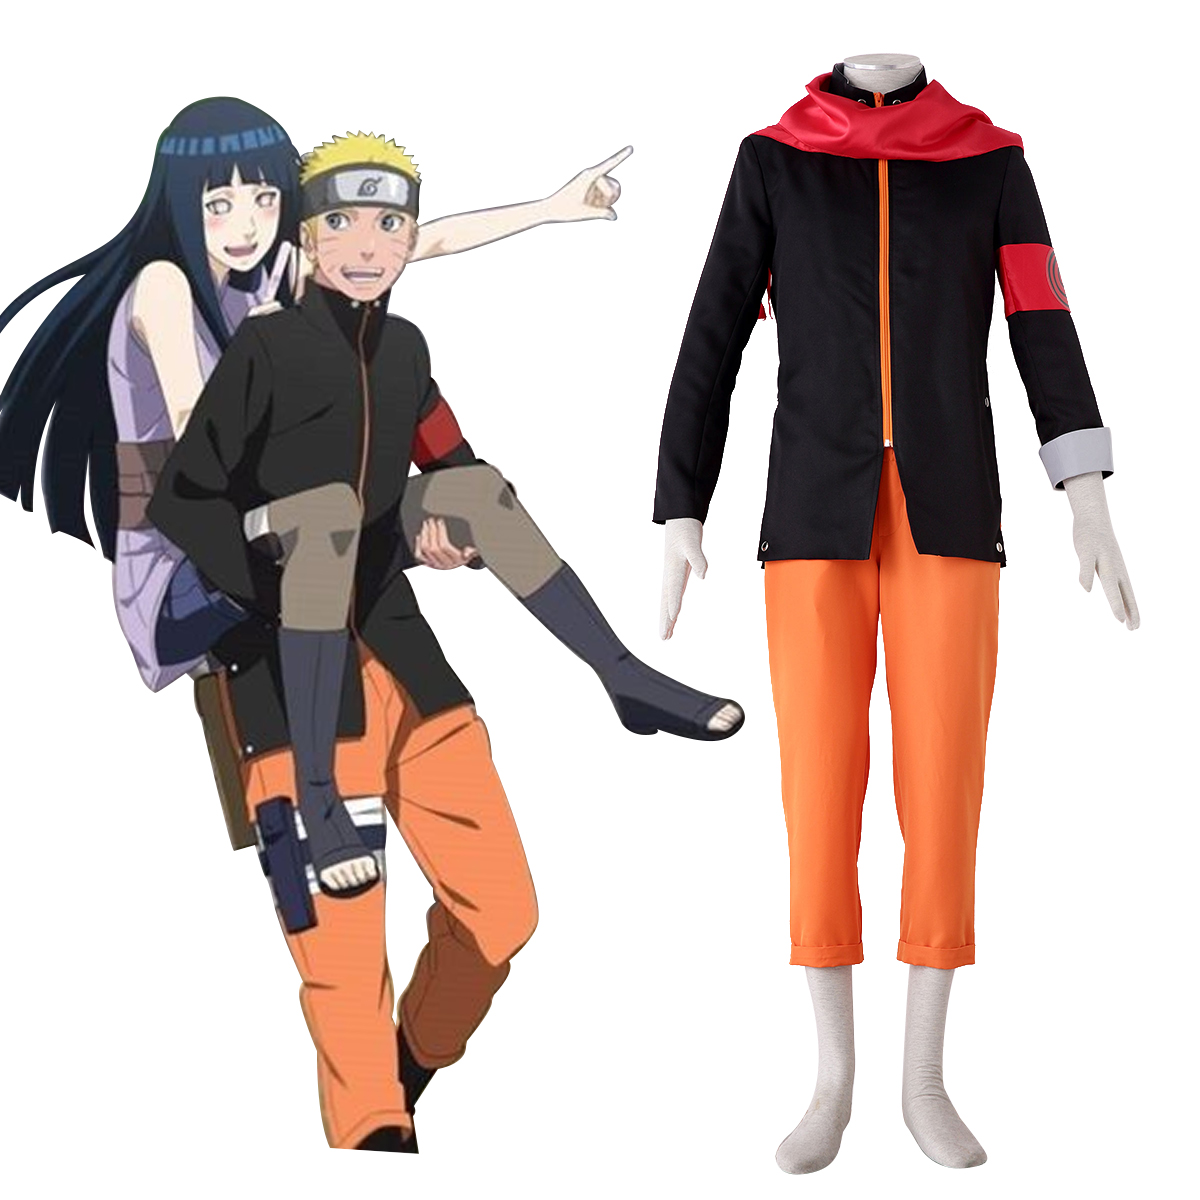 Naruto The Last Naruto 8 Anime Cosplay Costumes Outfit